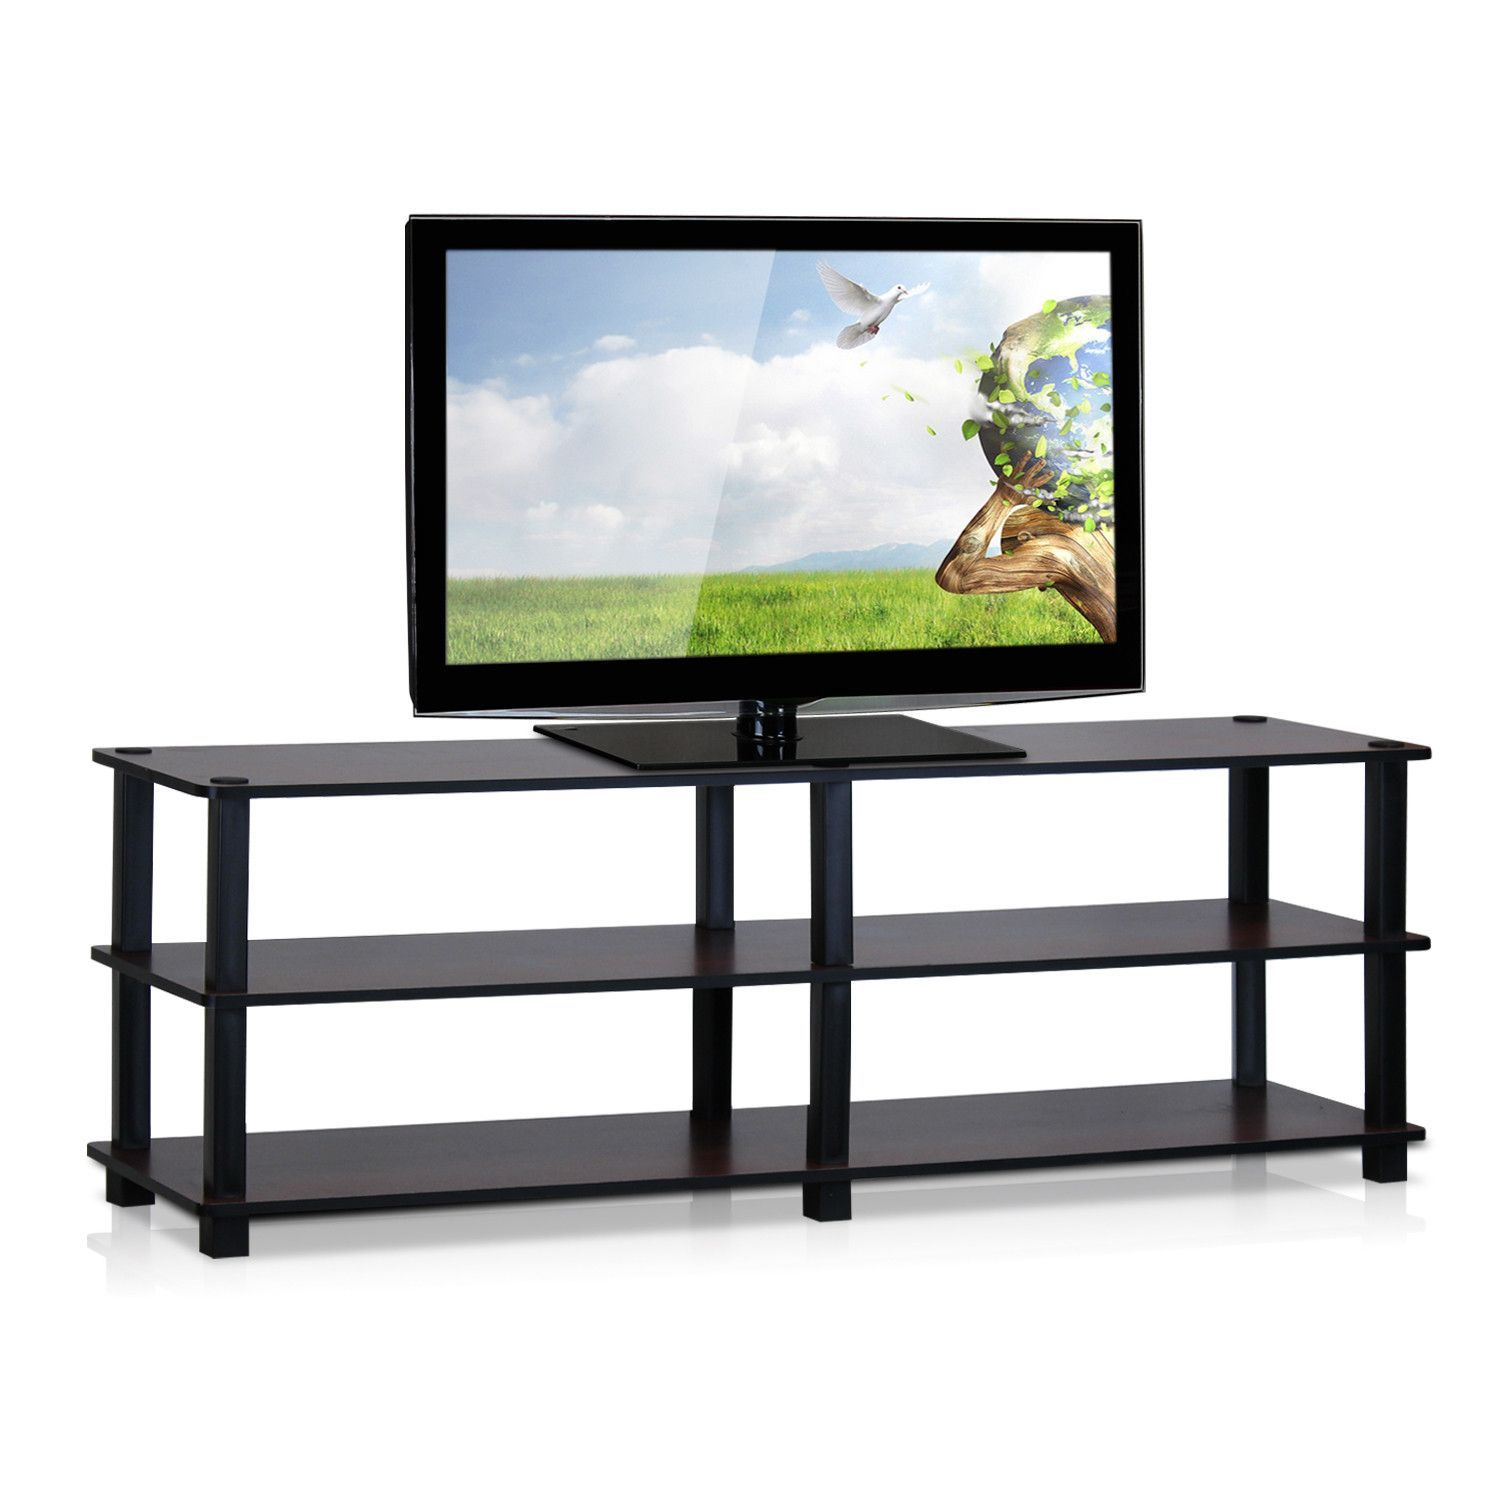 Furinno Turn S Tube No Tools 3 Tier Entertainment TV Stands Dark